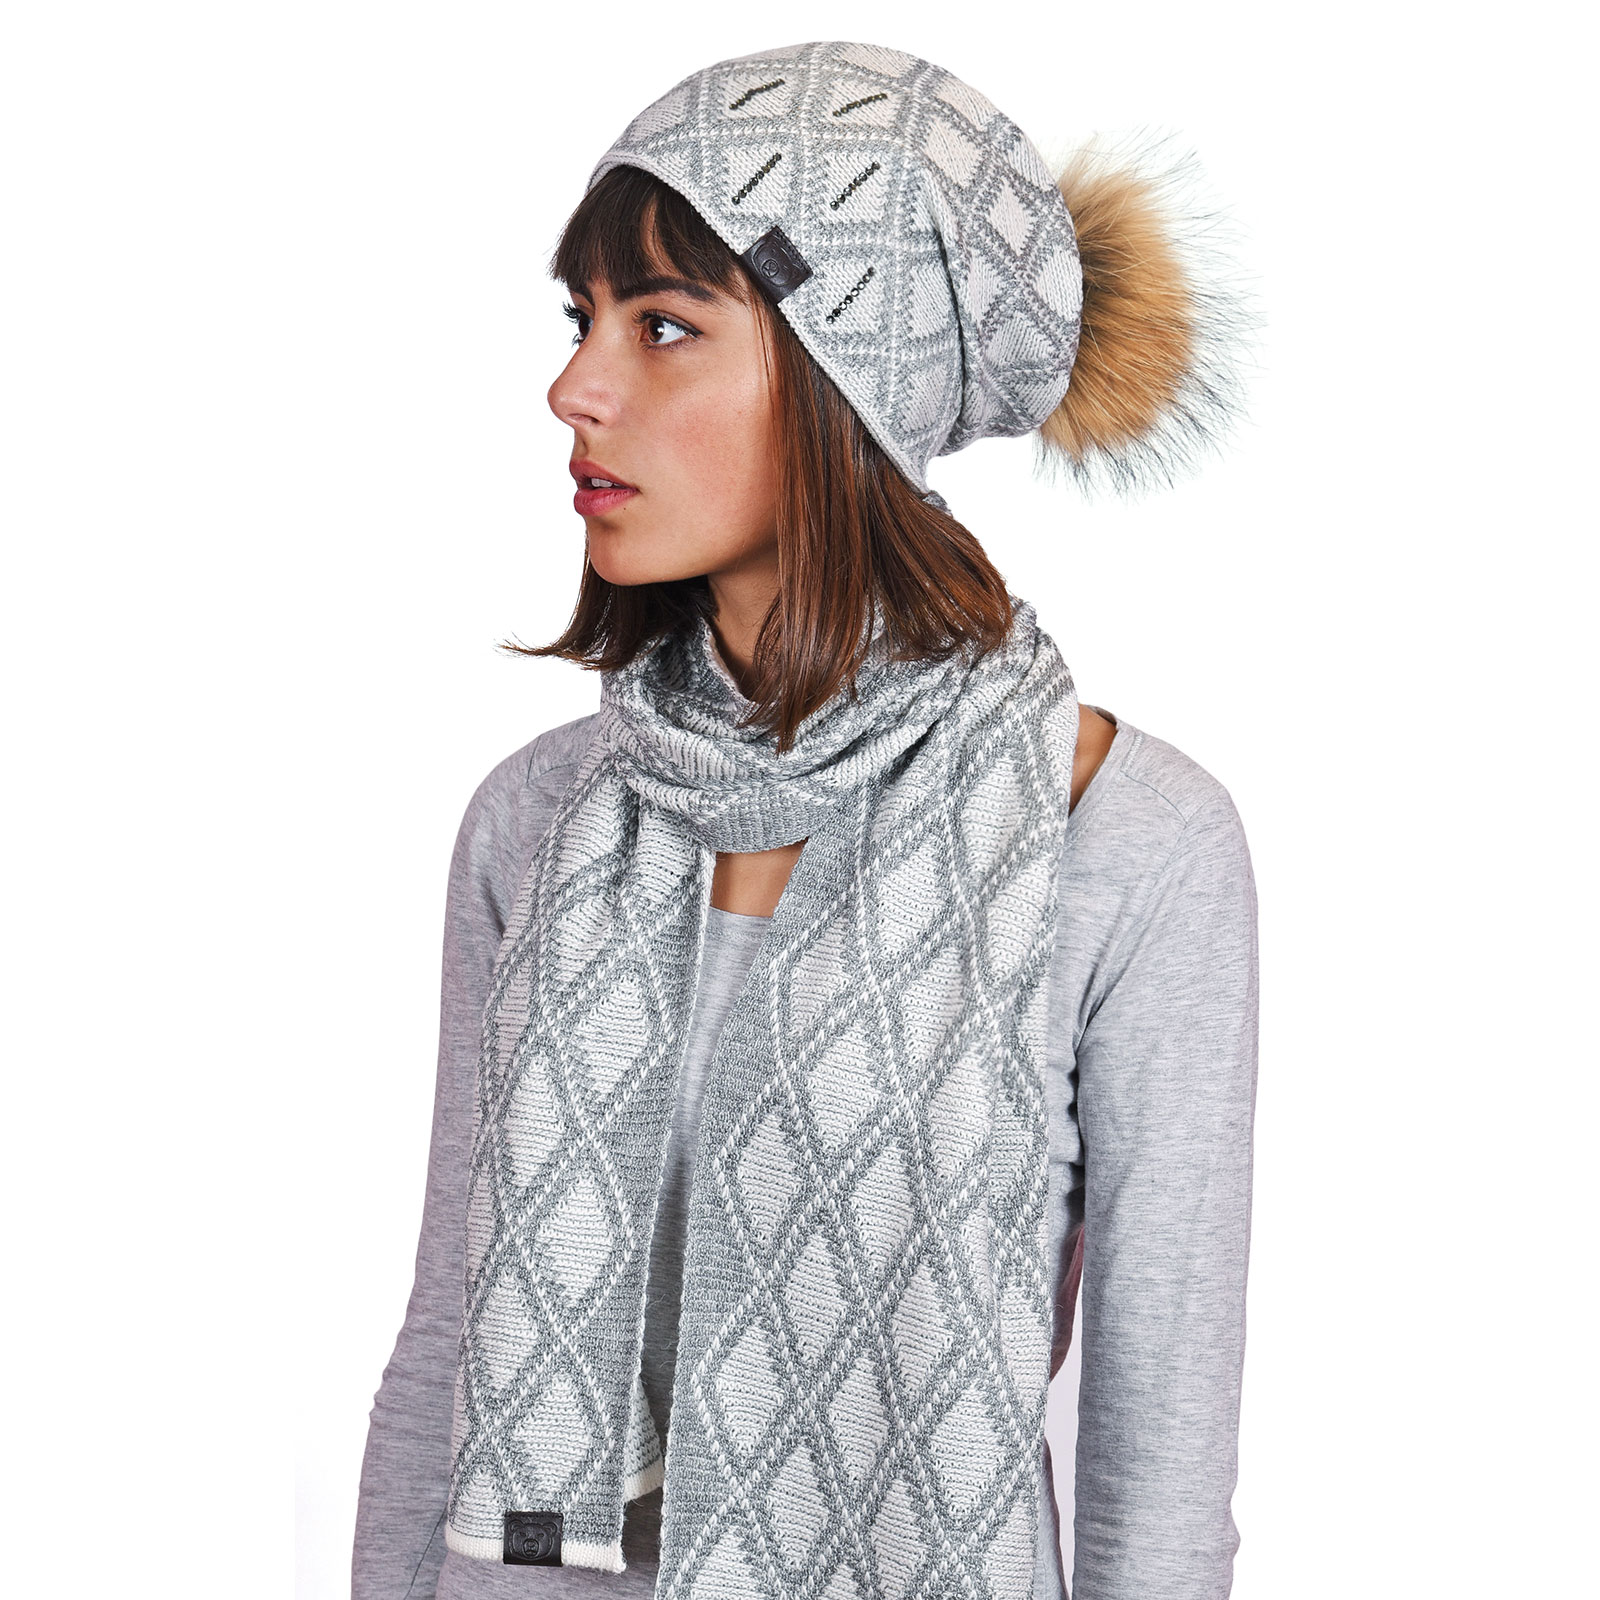 AT-04584-VF16-P-echarpe-et-bonnet-gris